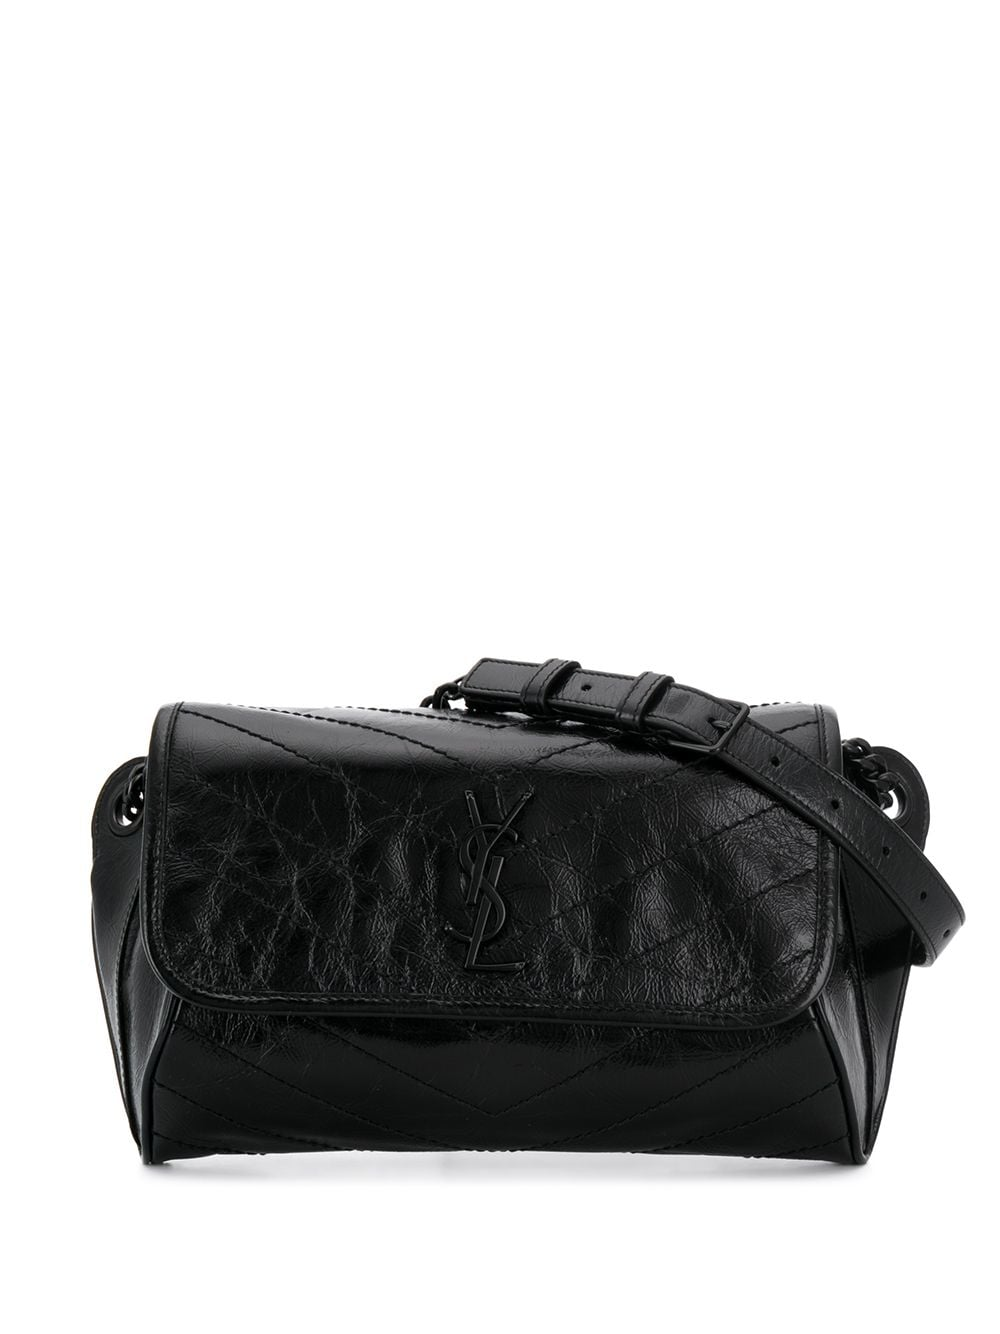 Niki BB shoulder bag